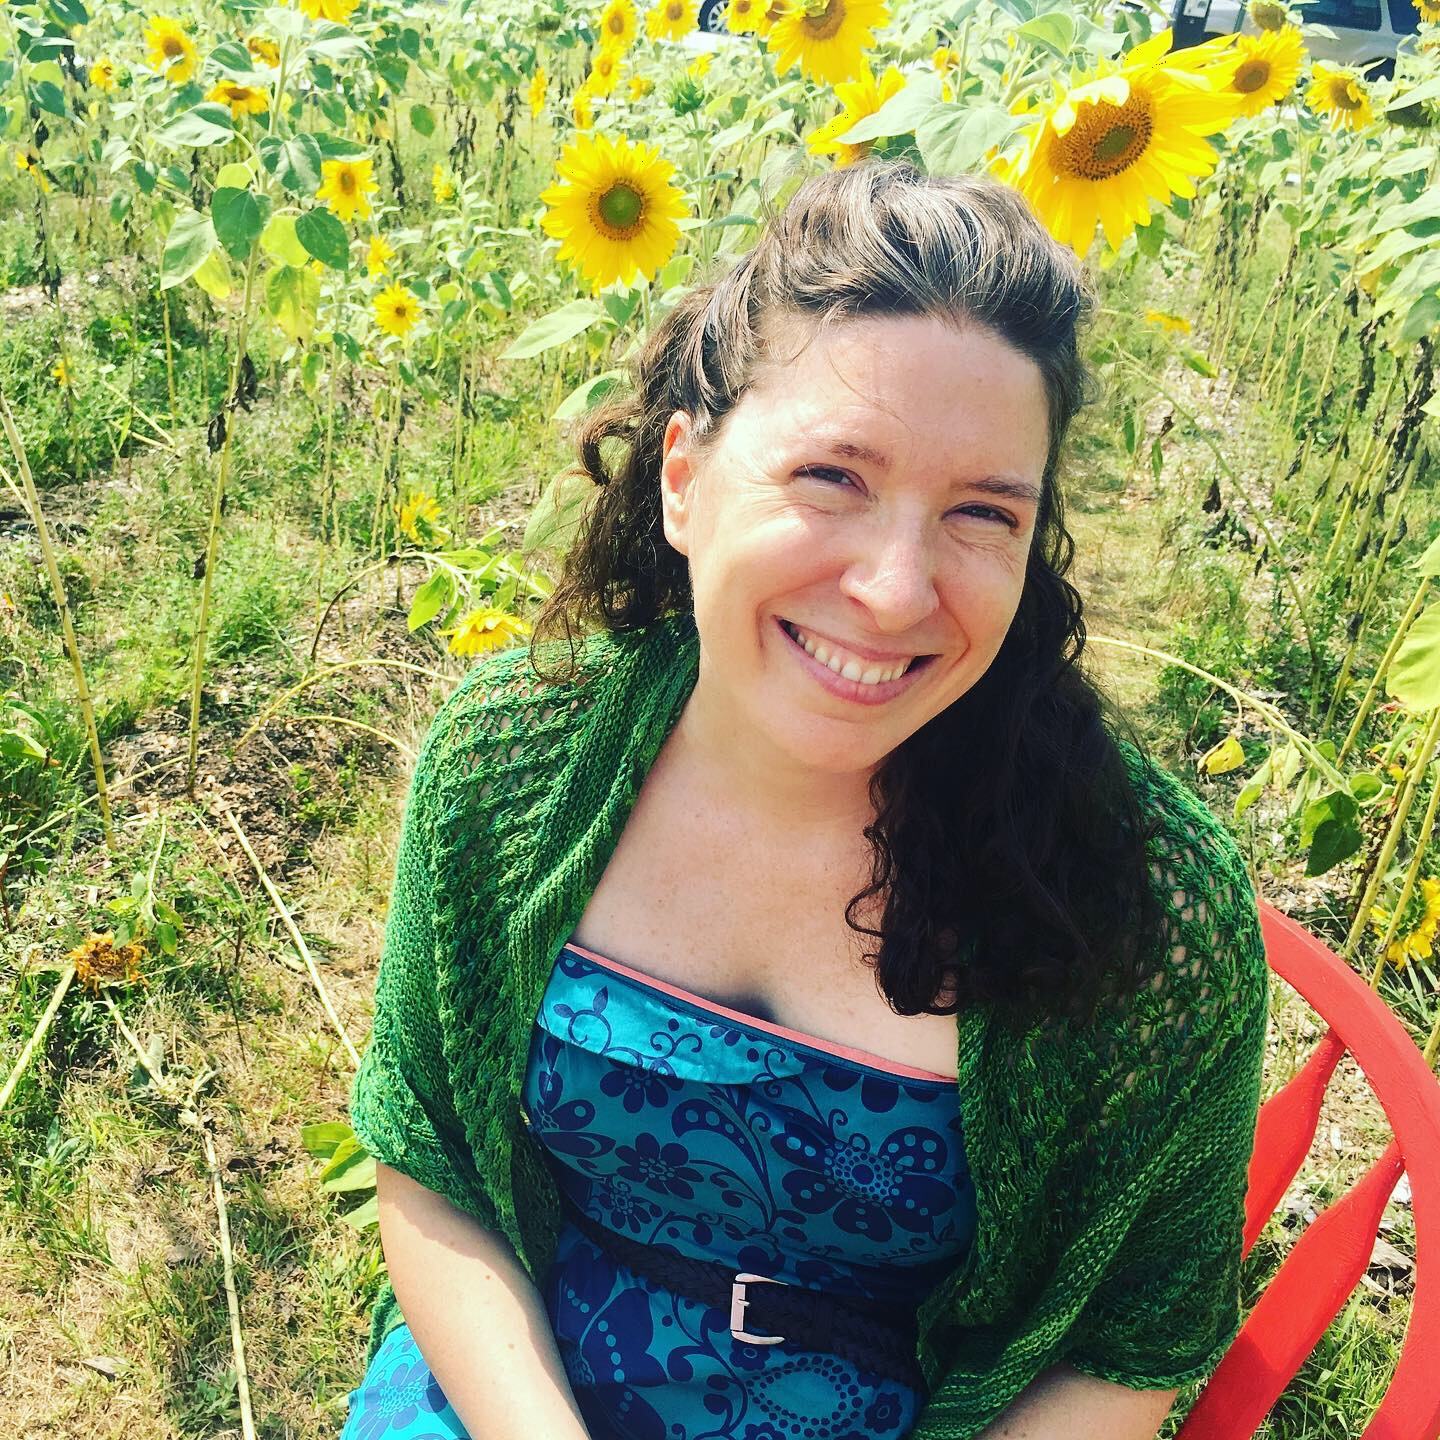 Woman sitting in a red chair in front of a field of sunflowers.